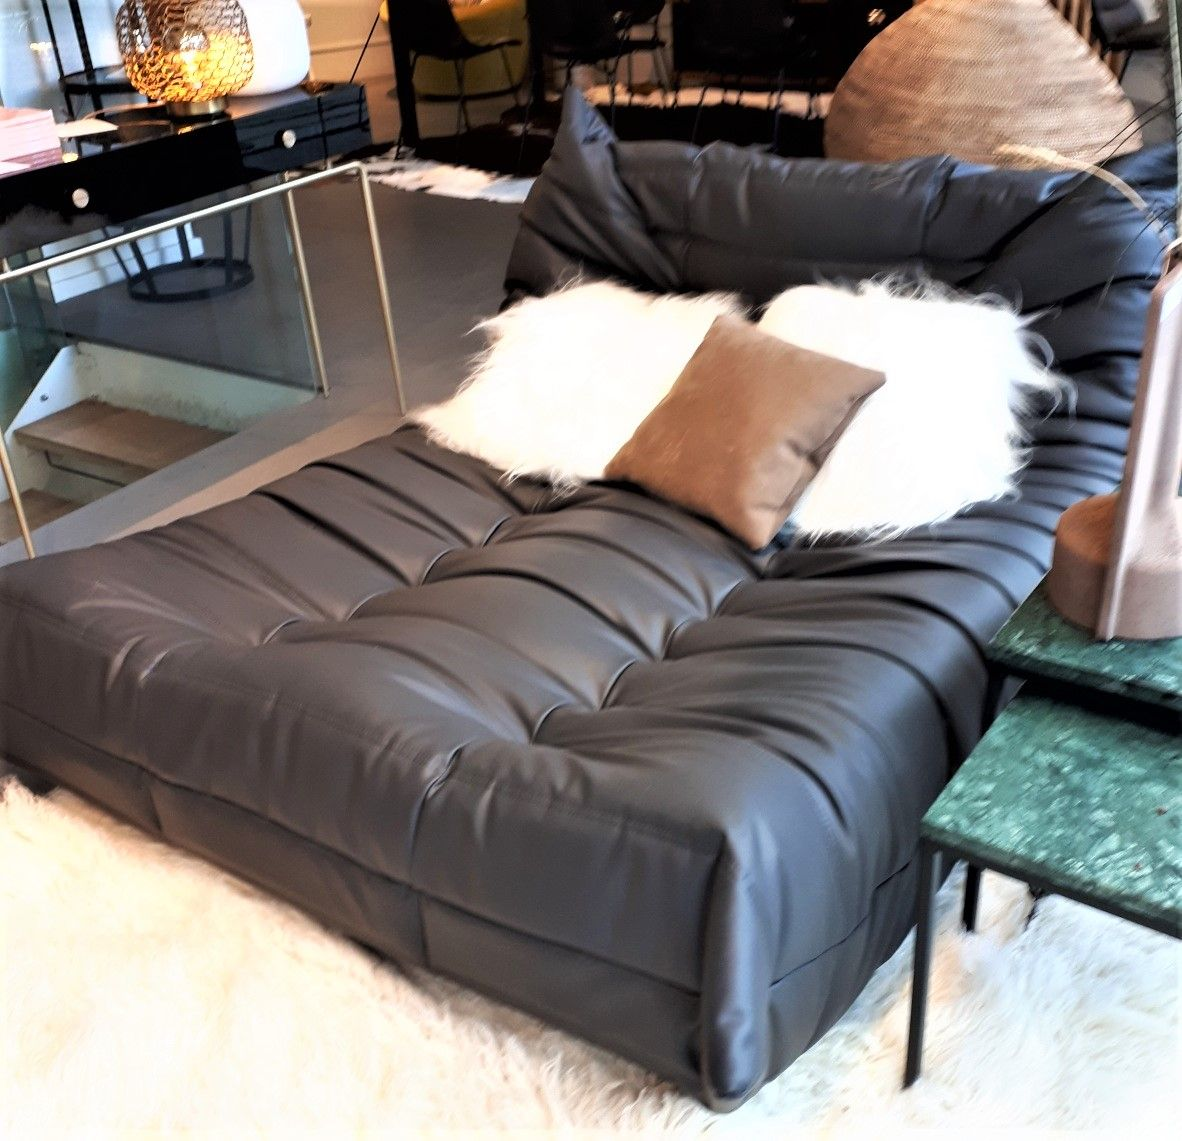 Togo Lounger W131 X D162 X H70cm In One Anthracite Man Made Fibre Fabric Was 2383 Now New Price 1429 Excellent Condition Ligneroset